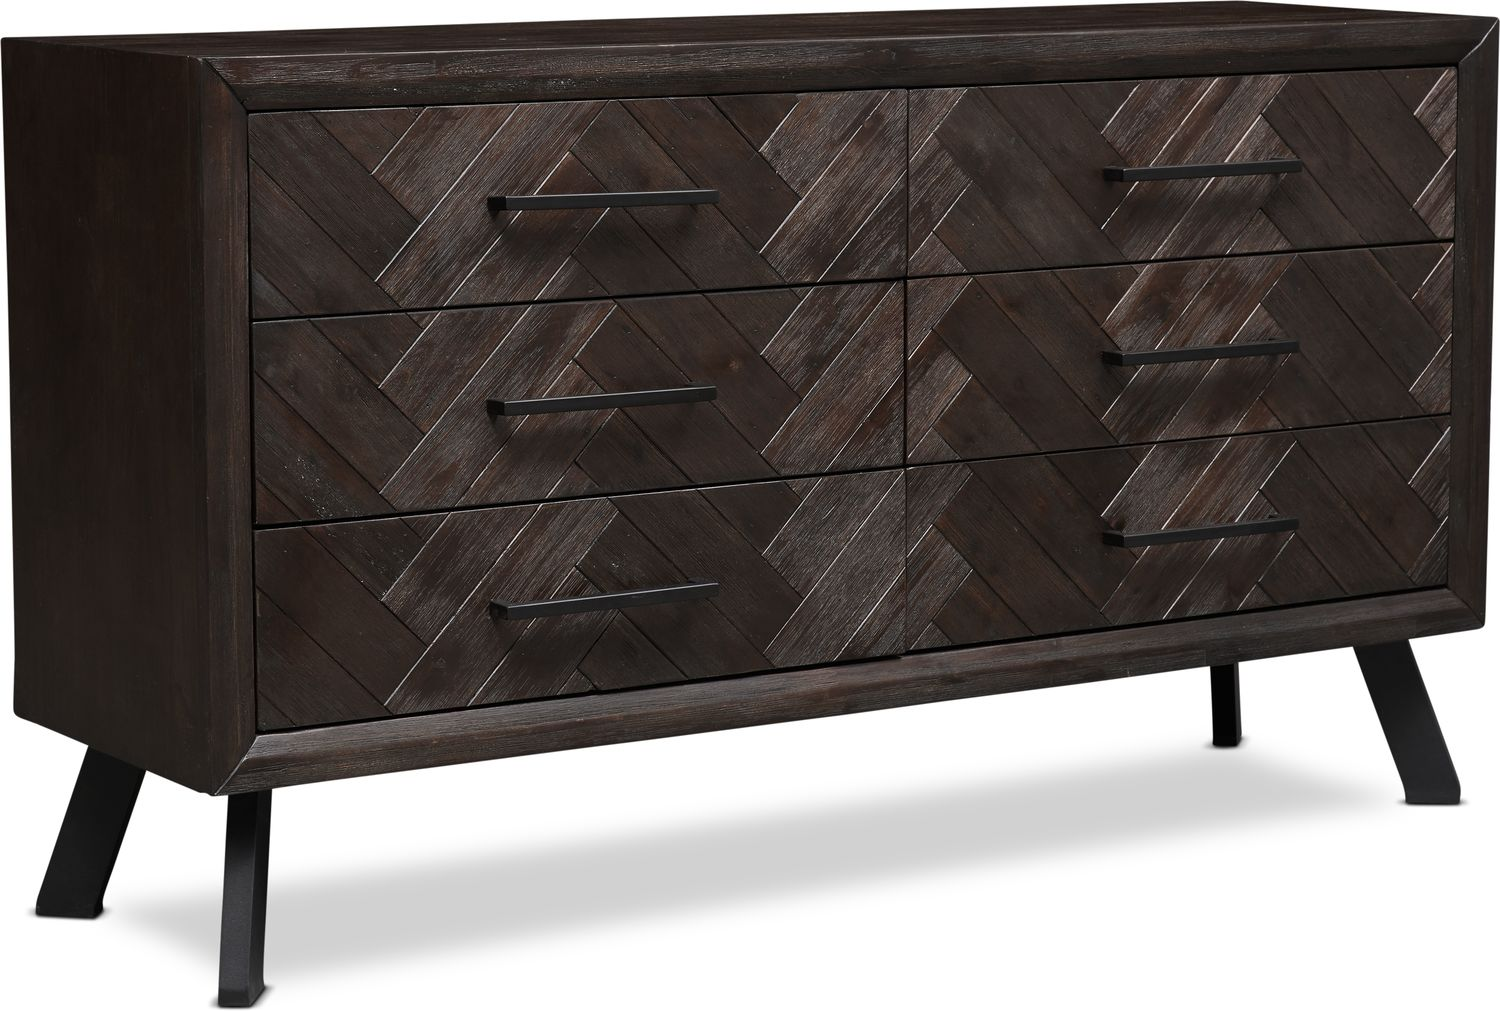 Paris Dresser Tobacco American Signature Furniture